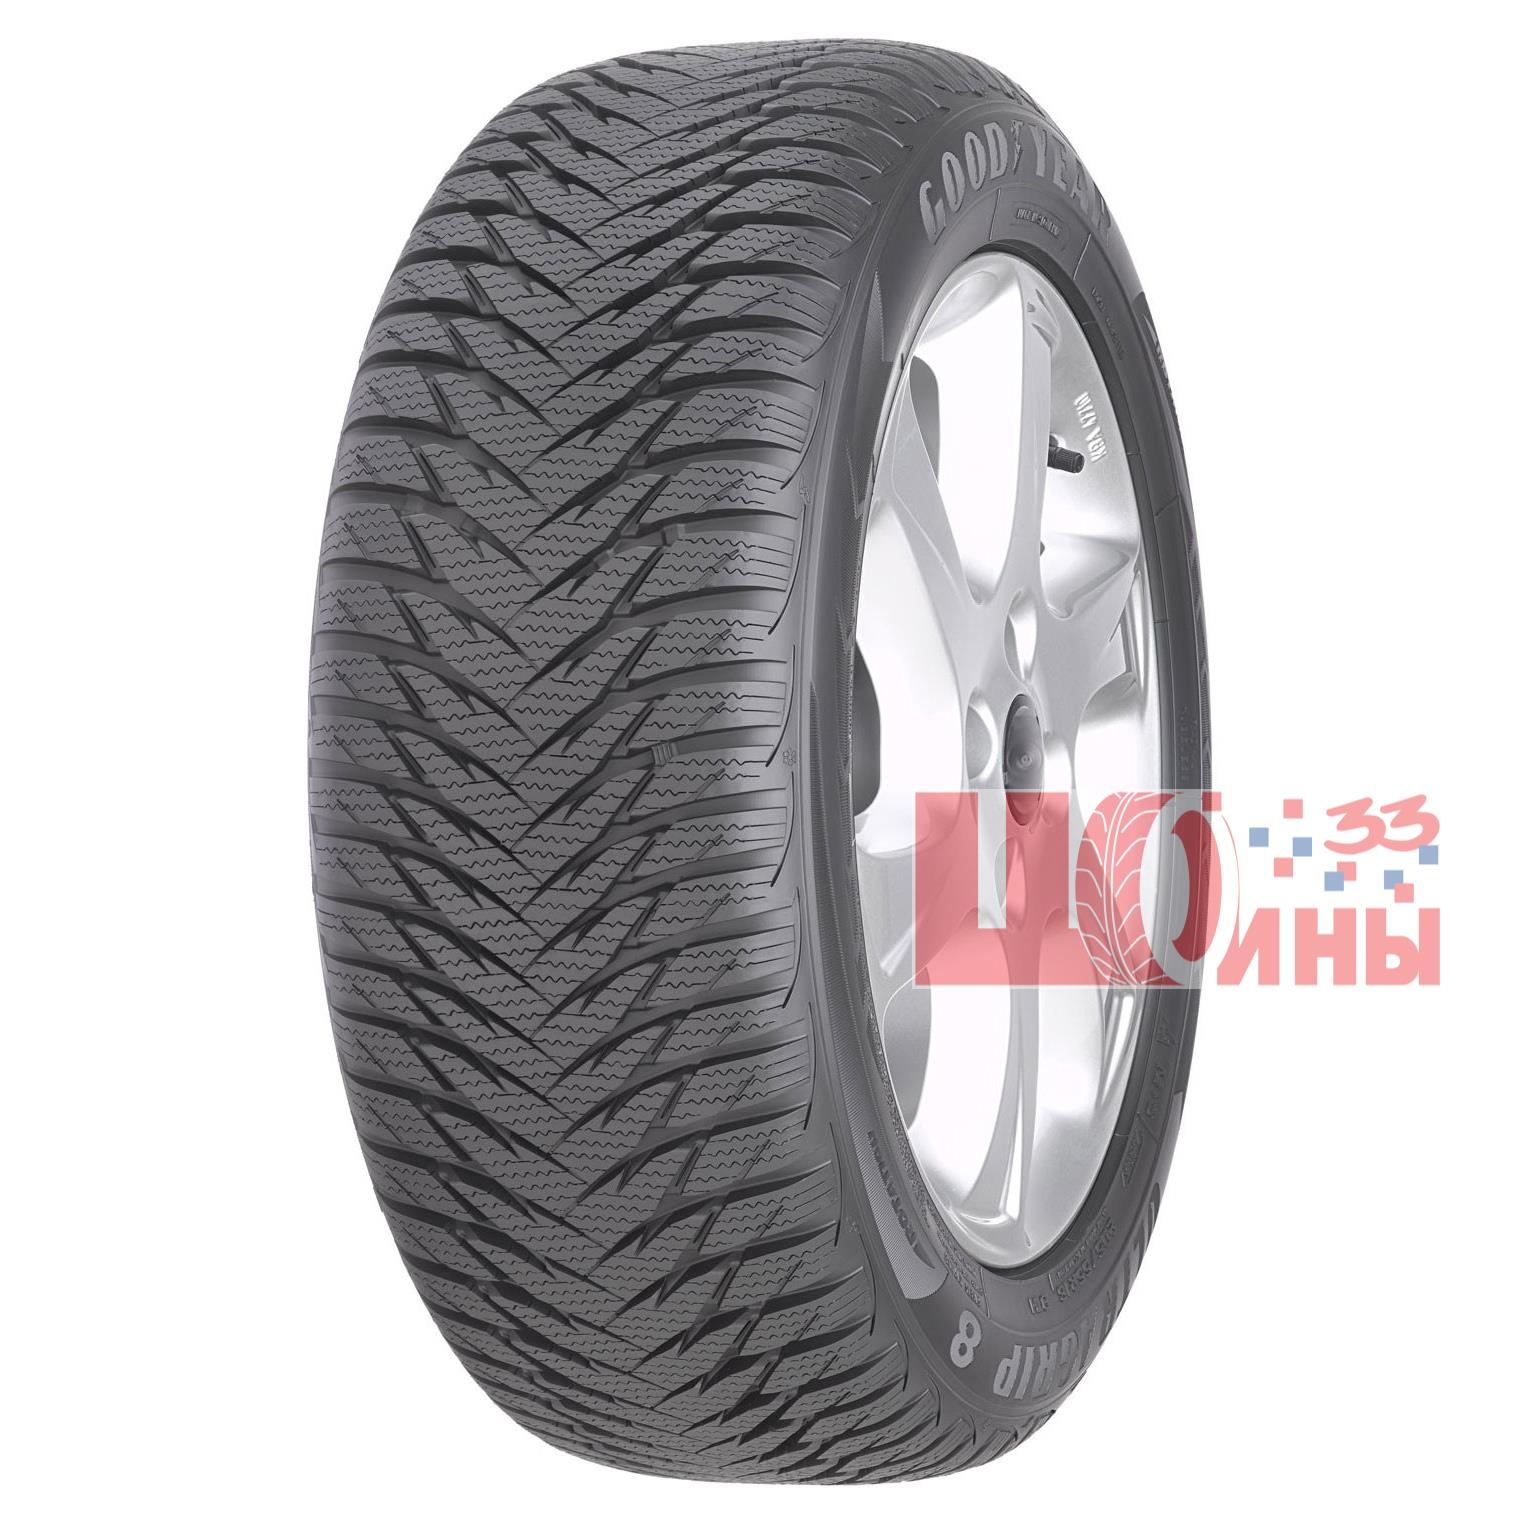 Б/У 205/55 R16 Зима GOODYEAR Ultra Grip-8 Кат. 2